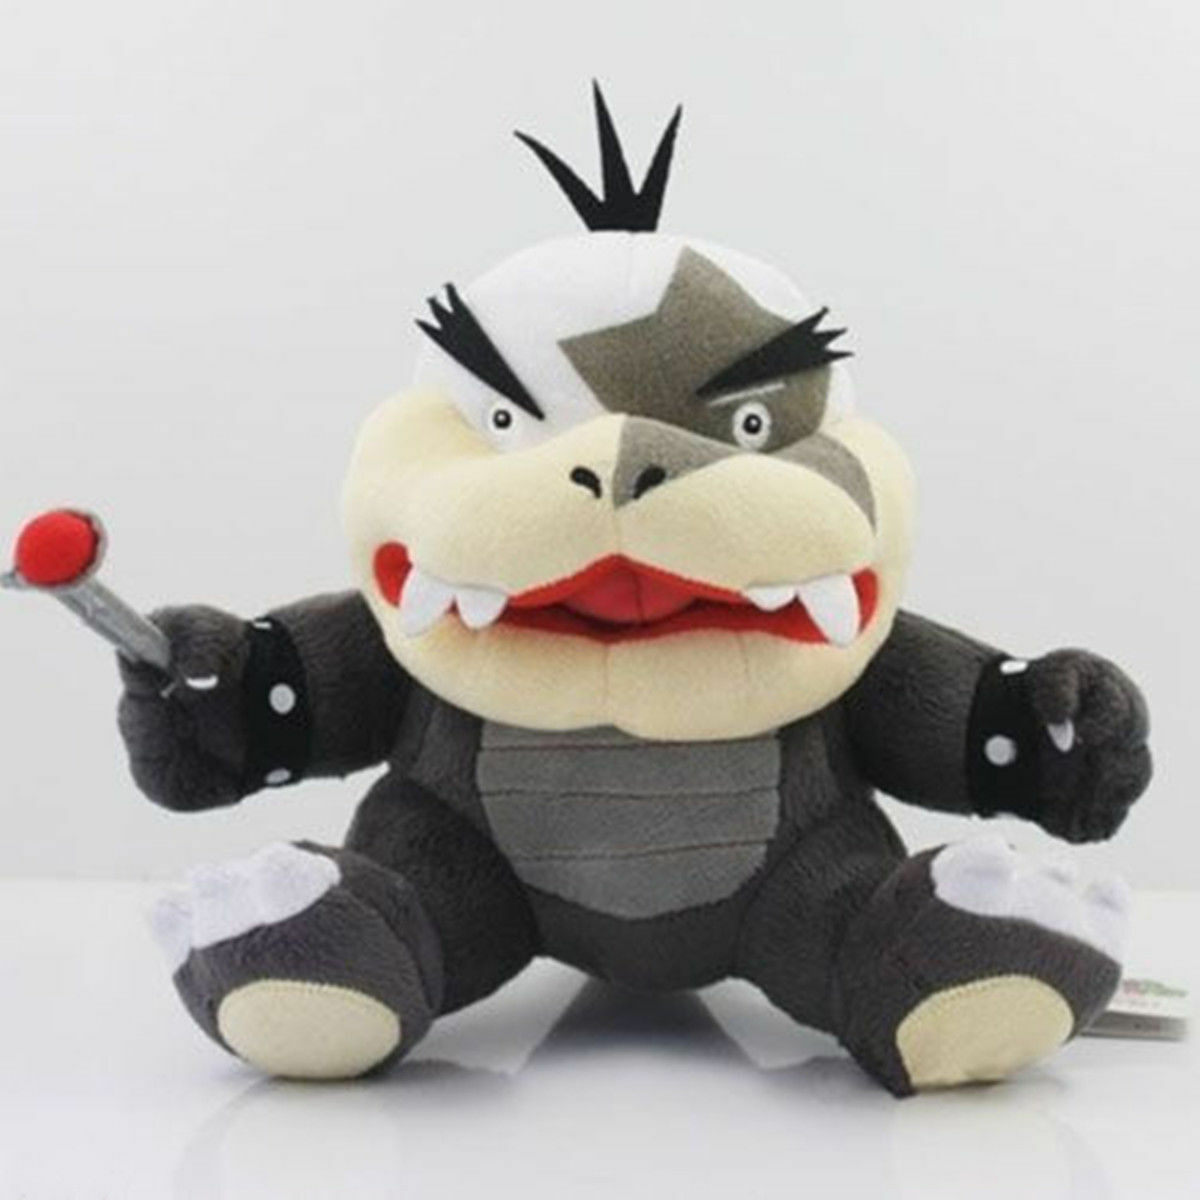 IGGY MORTON WENDY LEMMY LEMMY LEMMY ROY LUDWIG LARRY SUPER MARIO BROS KOOPALINGS PLUSH Toy 23d8da